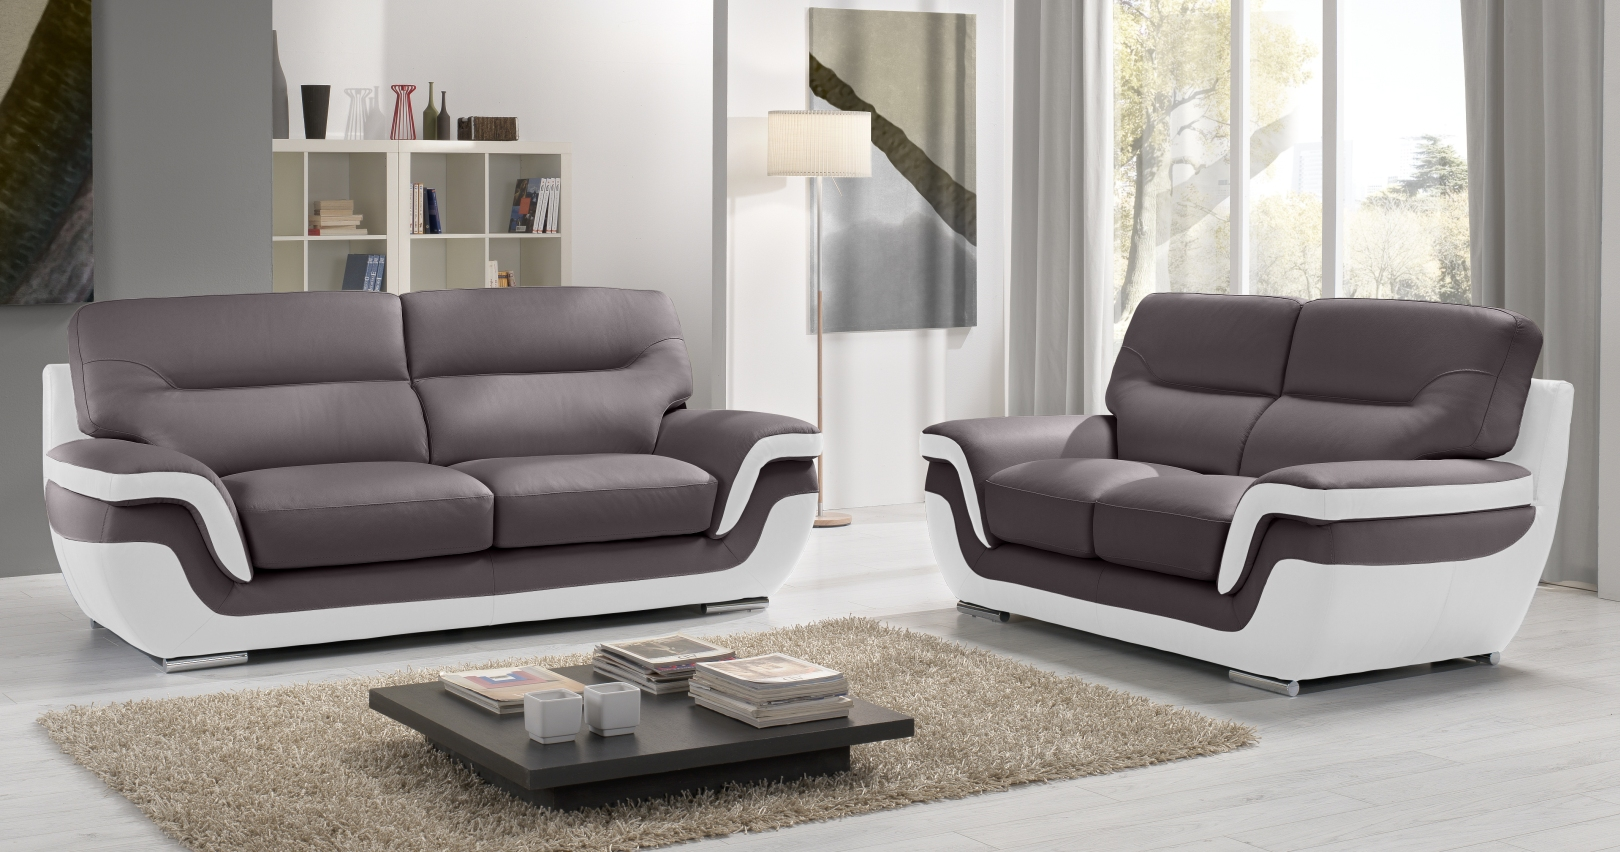 canapé RODRIGUE Salon 3+2 Cuir Design Italienpersonnalisable sur ...